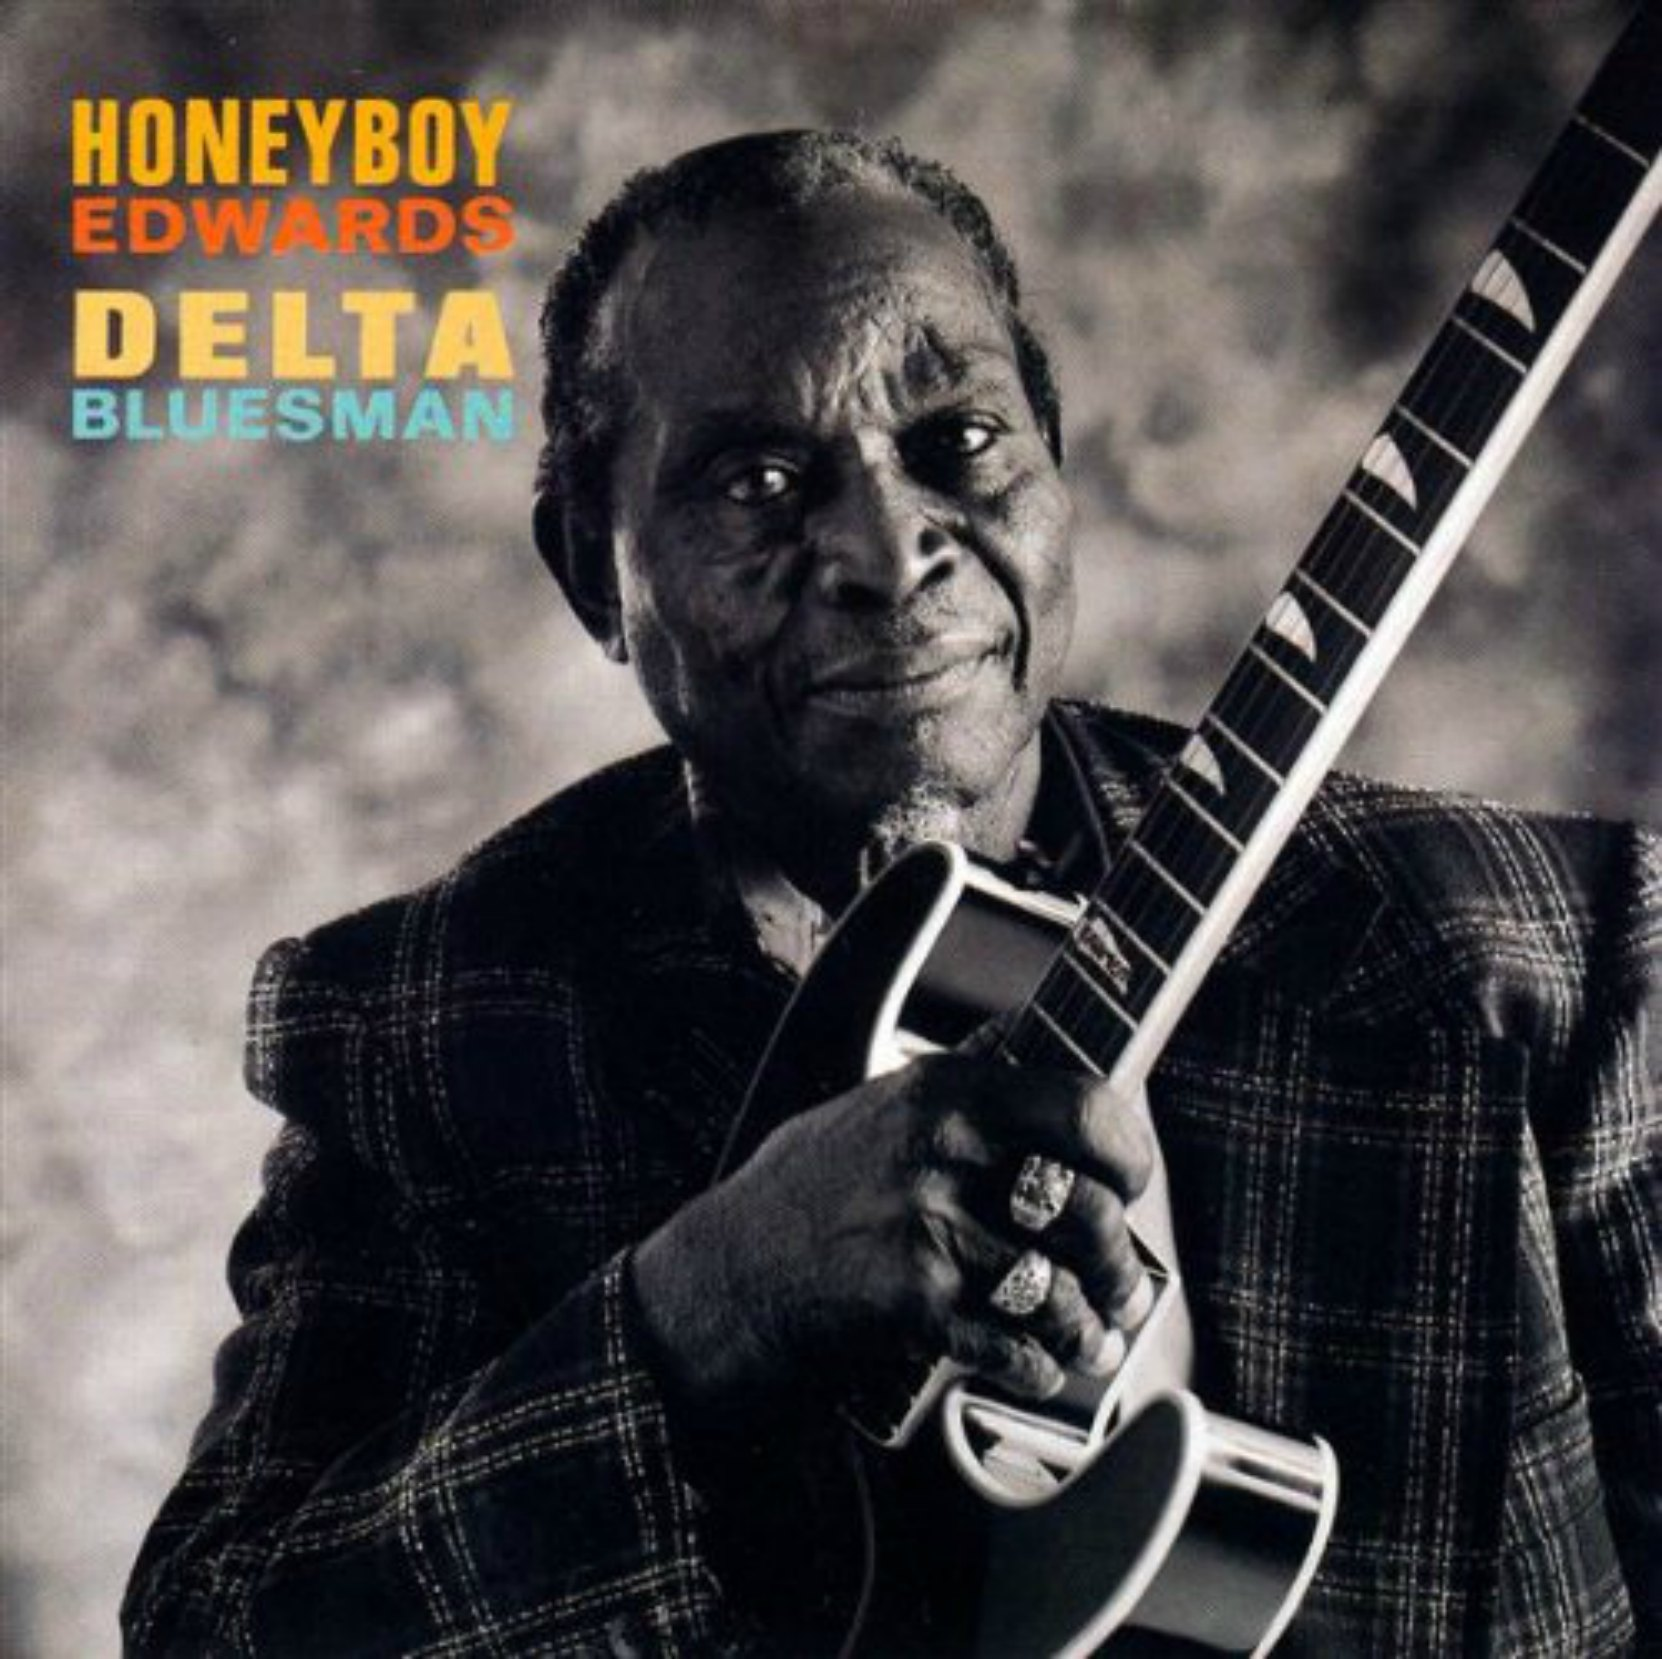 CD cover, Delta Bluesman by David Honeyboy Edwards. This CD contains the 1942 Alan Lomax recordings of Honeyboy Edwards